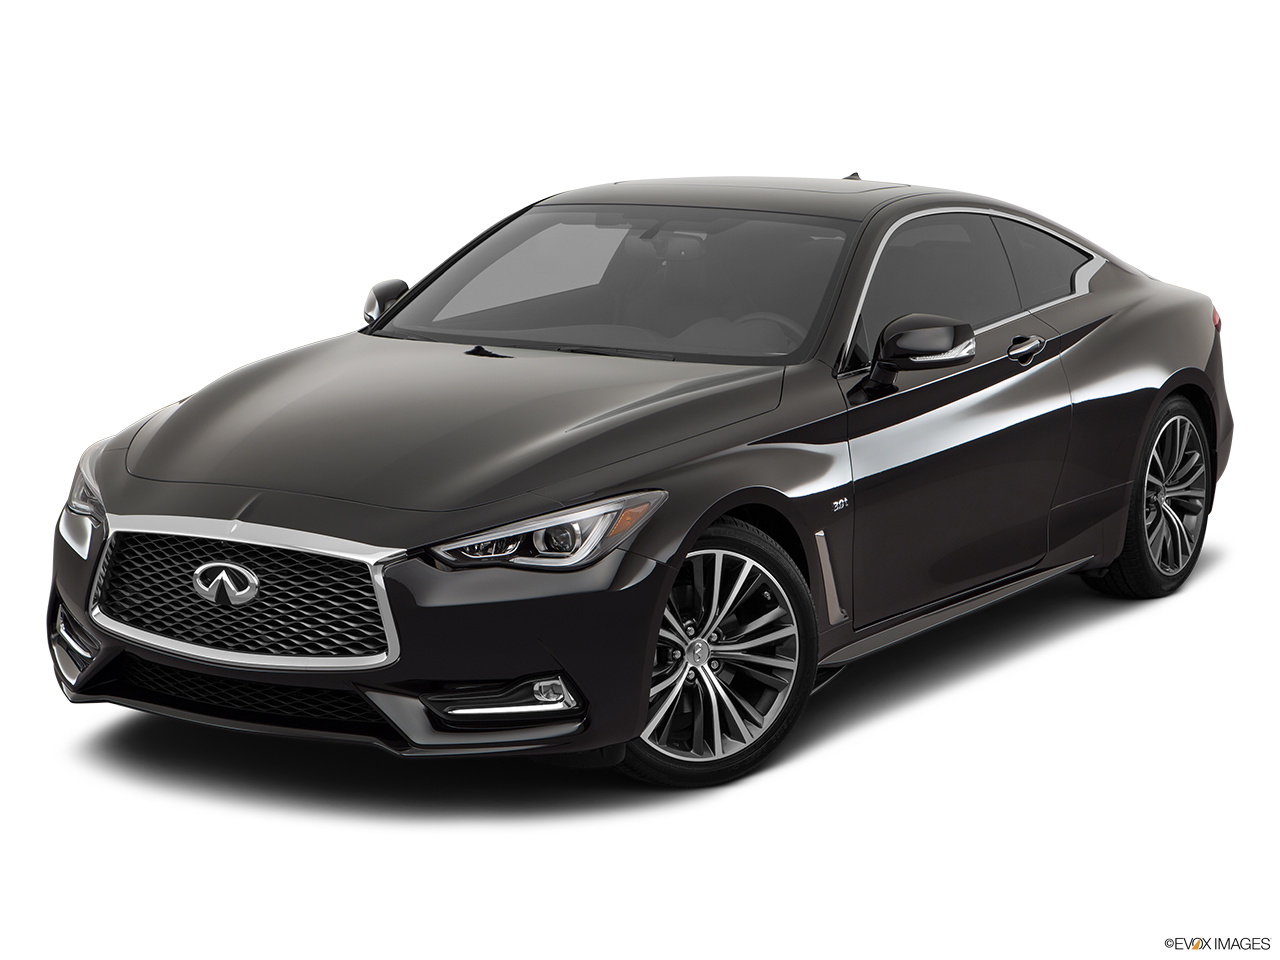 2018 infiniti q60 coupe prices in bahrain gulf specs for South motors infiniti used cars